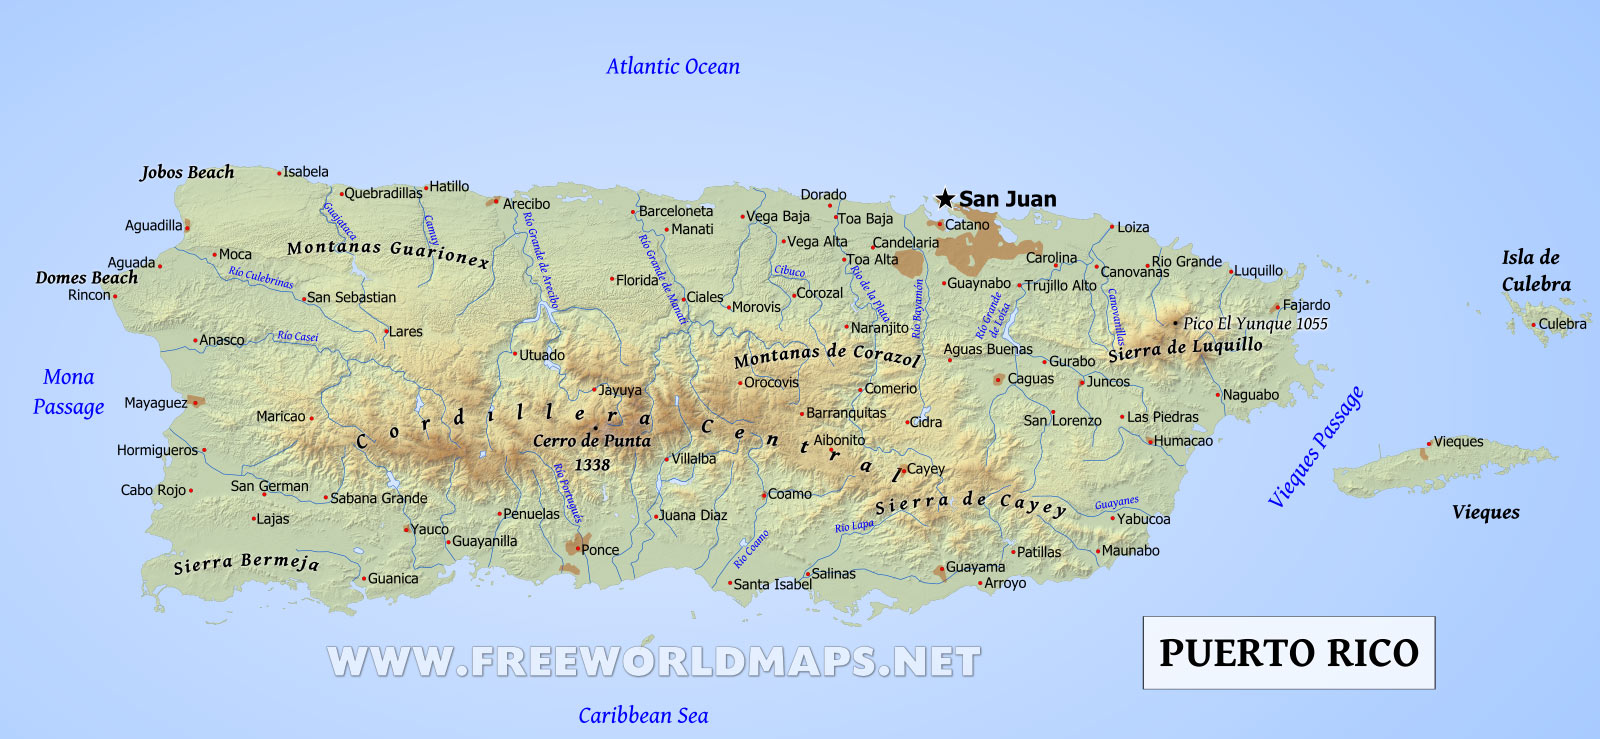 Puerto Rico Map - Car Radio | GPS